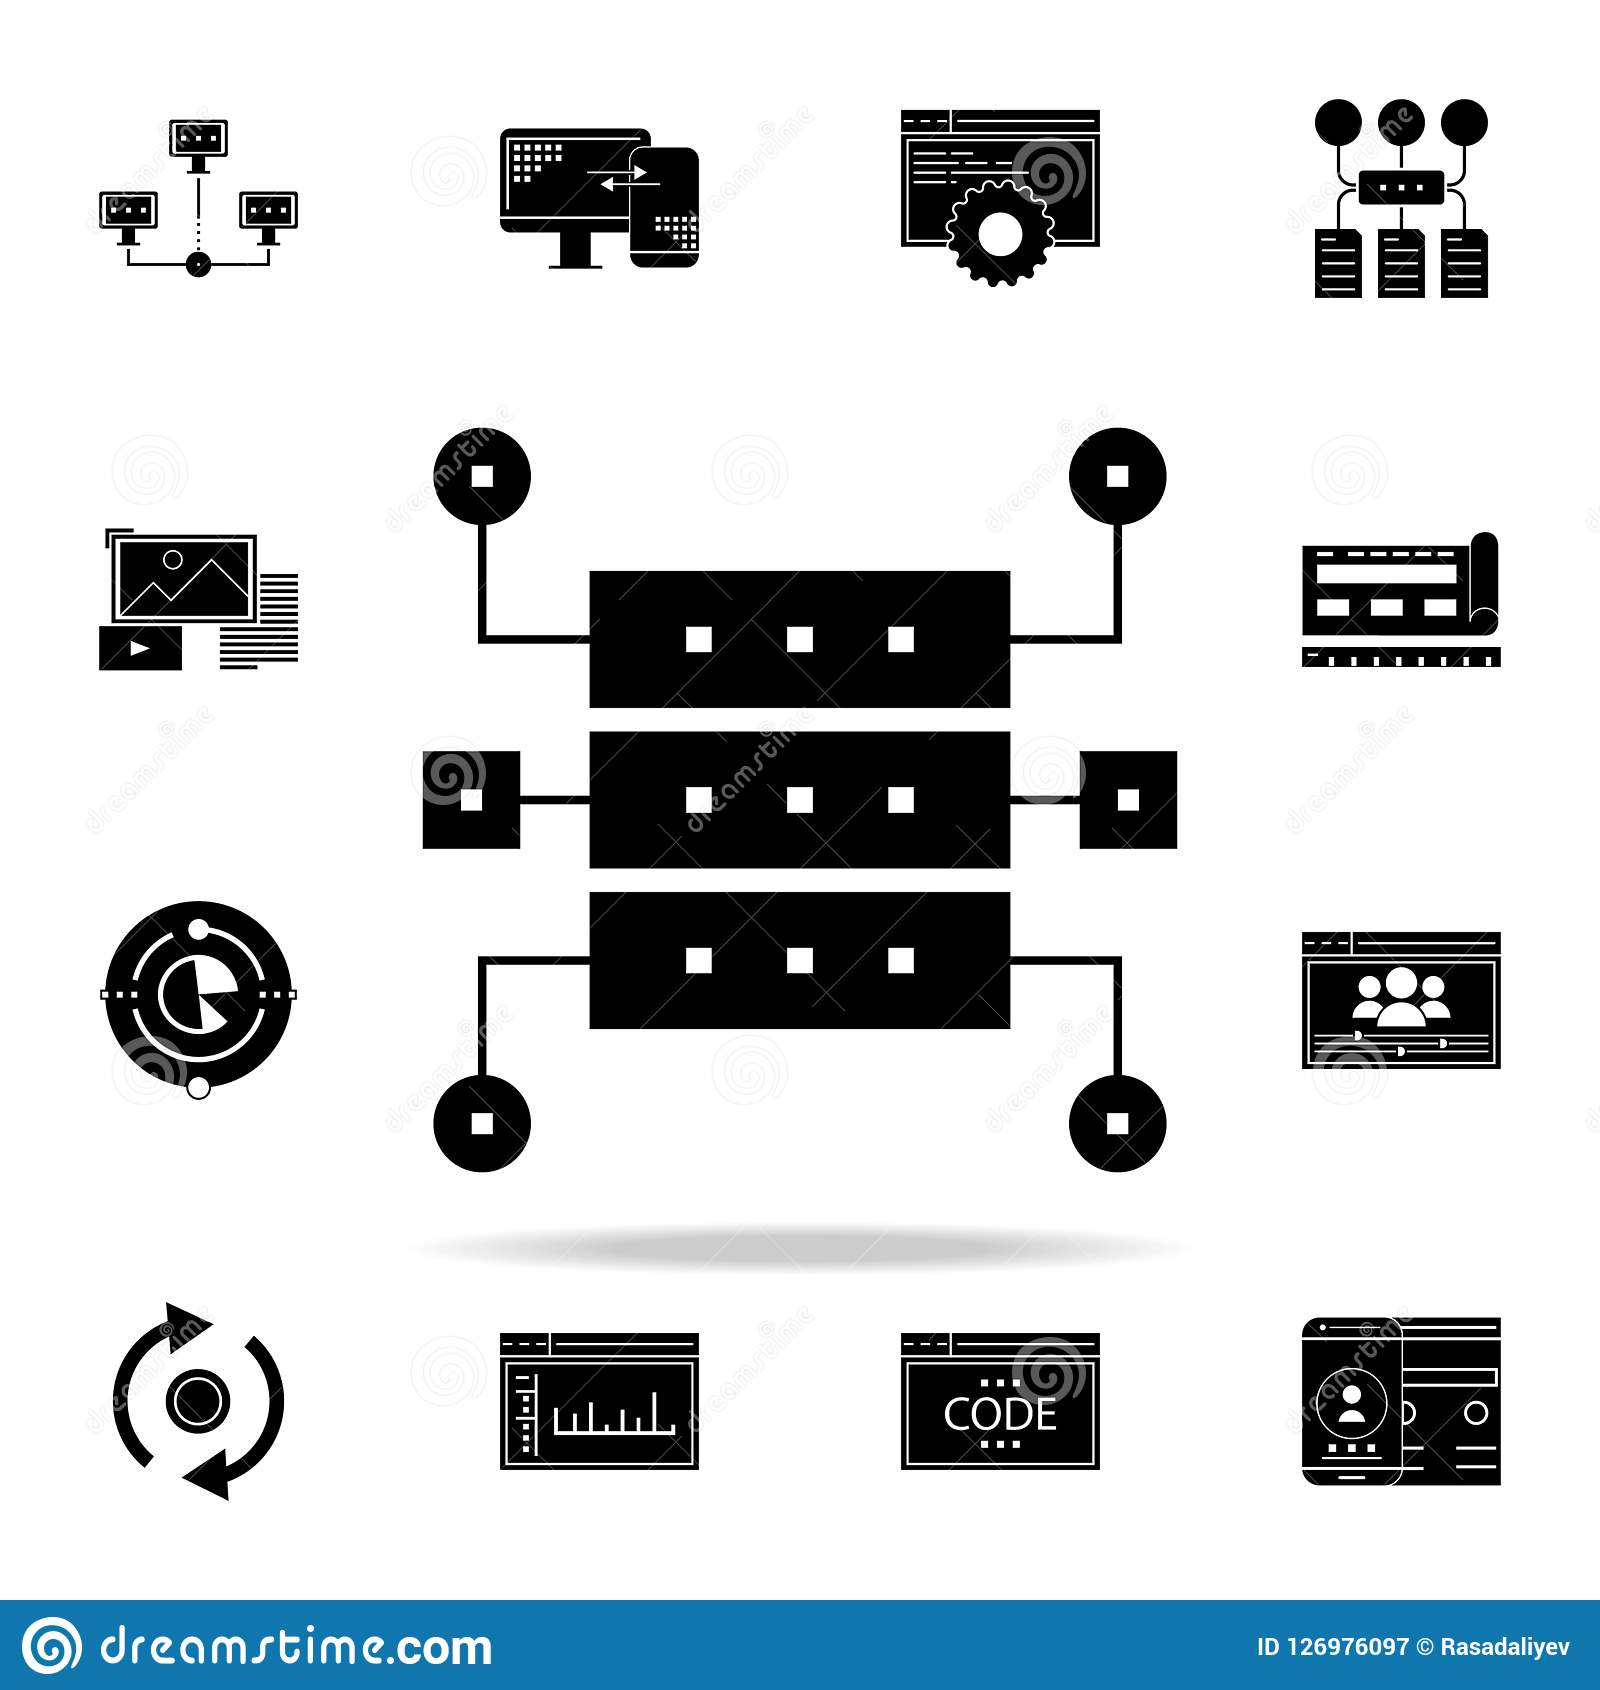 data structure icon web development icons universal set for web and mobile stock illustration illustration of global internet 126976097 dreamstime com